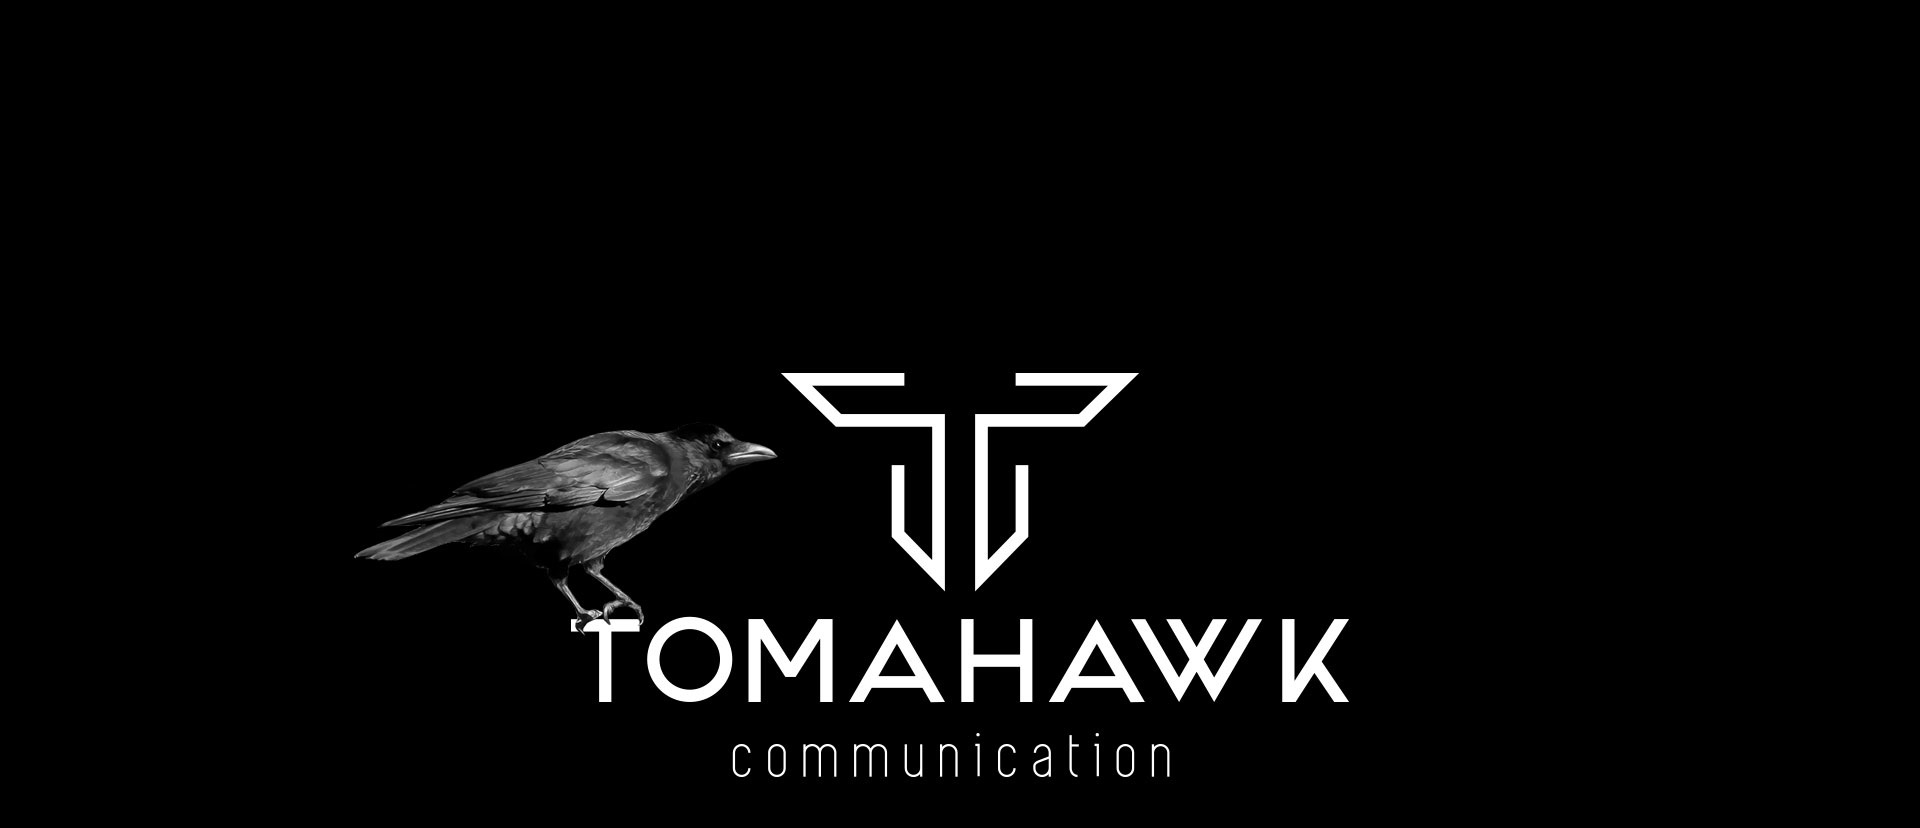 Tomahawk-communication-logo-corbeau-